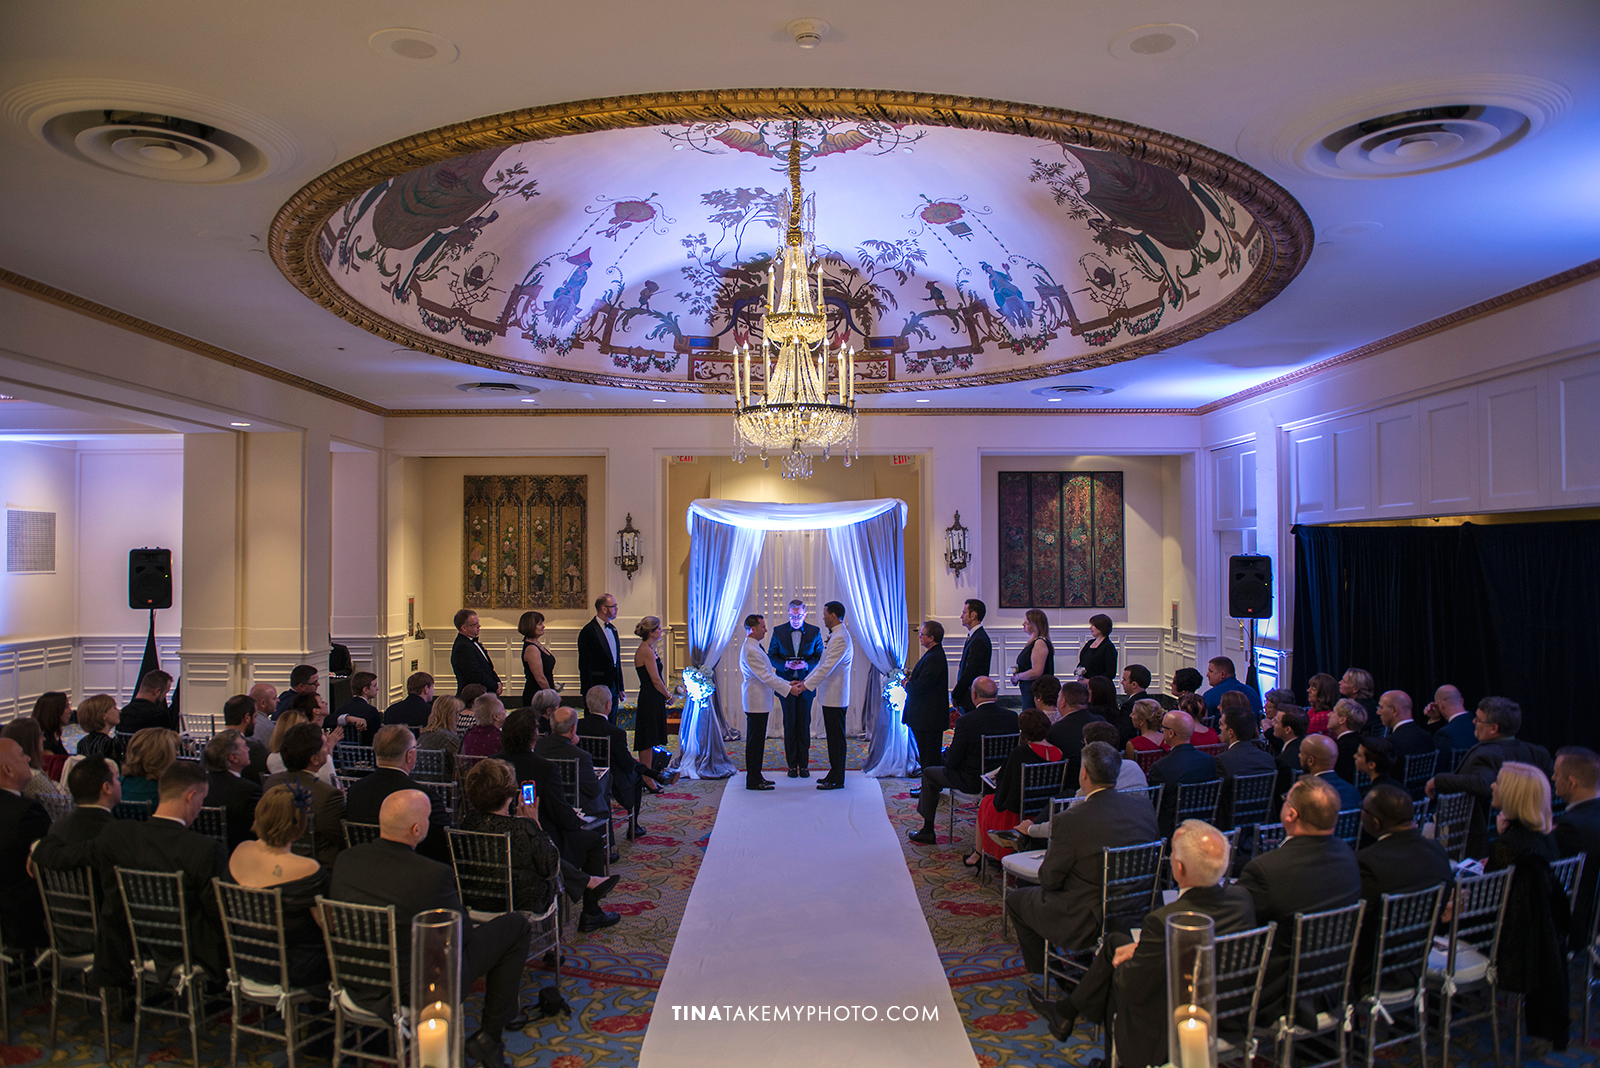 24-Washington-DC-Virginia-Gay-Same-Sex-Wedding-Men-12-13-14-Ceremony-Photographer